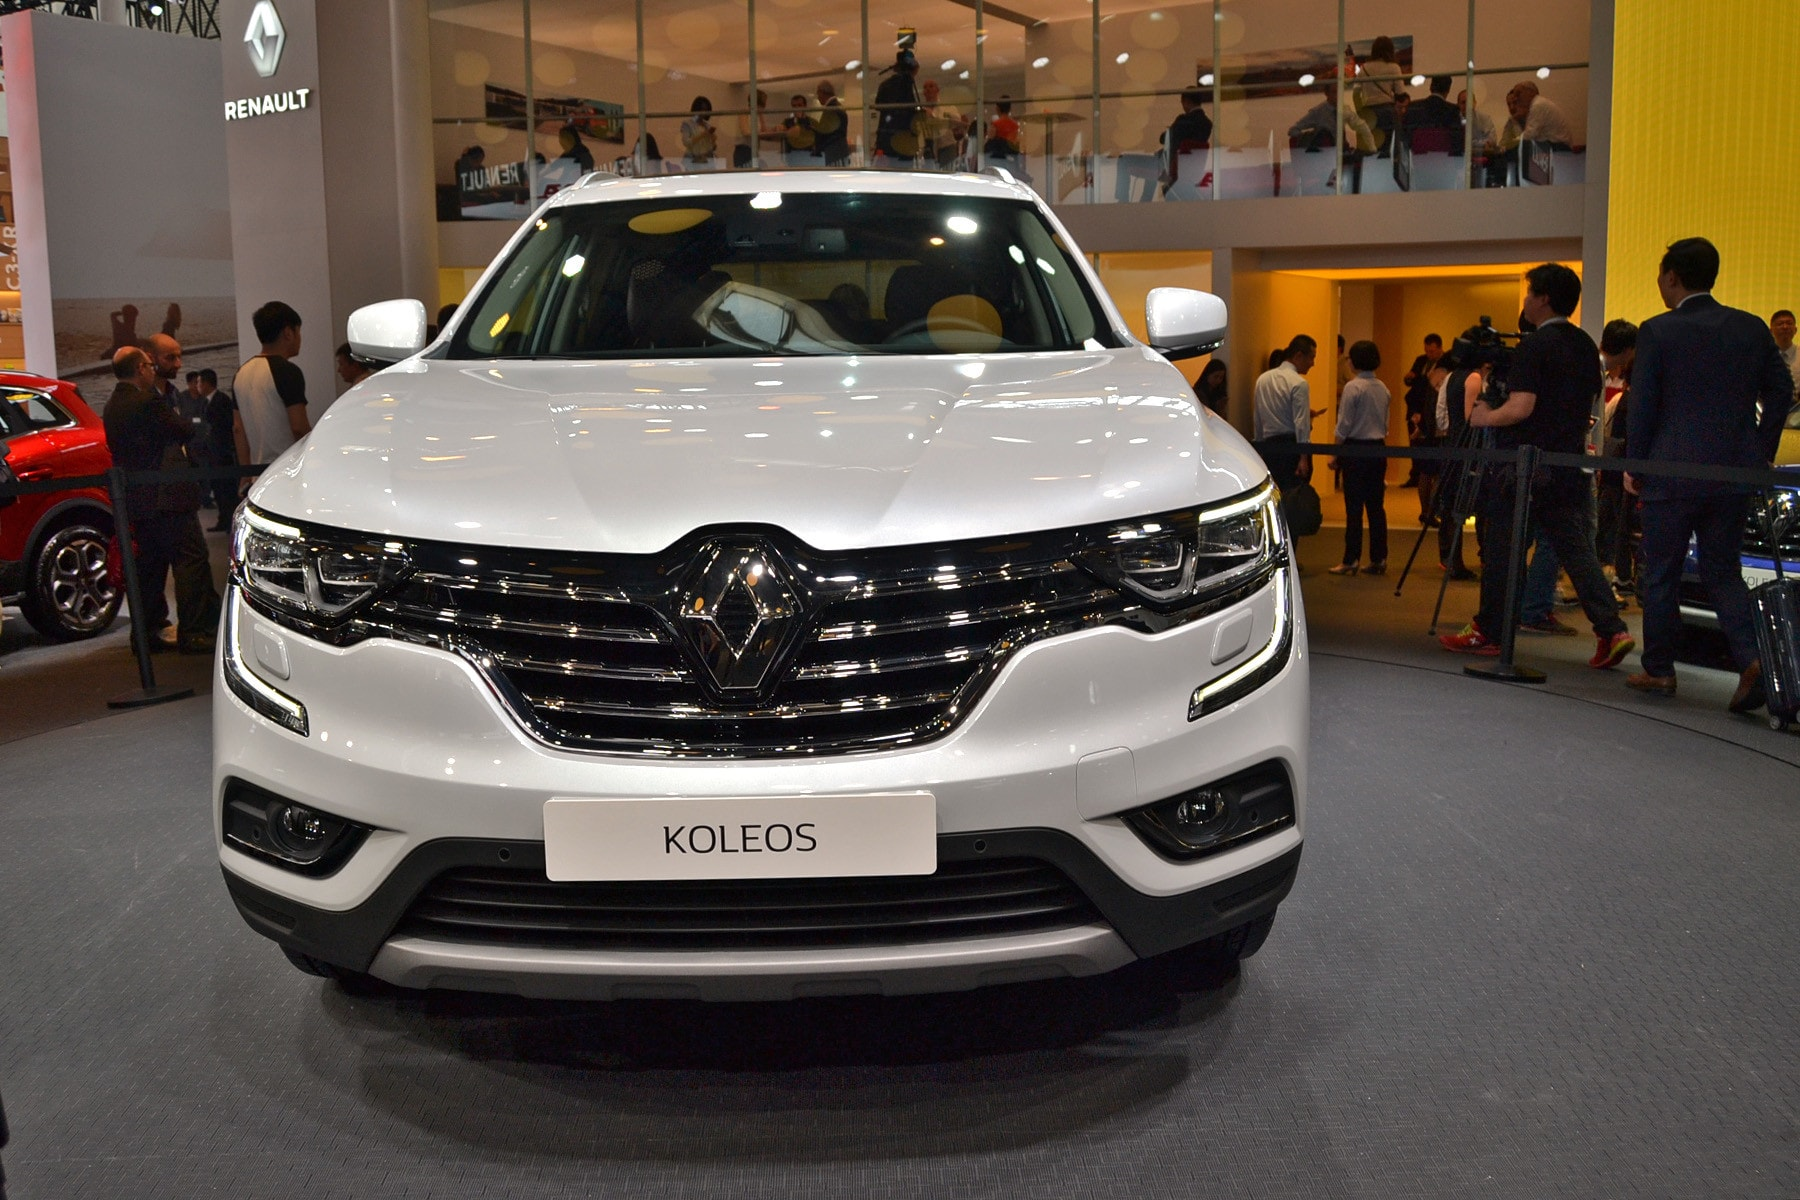 Renault Koleos 2 Desktop wallpapers